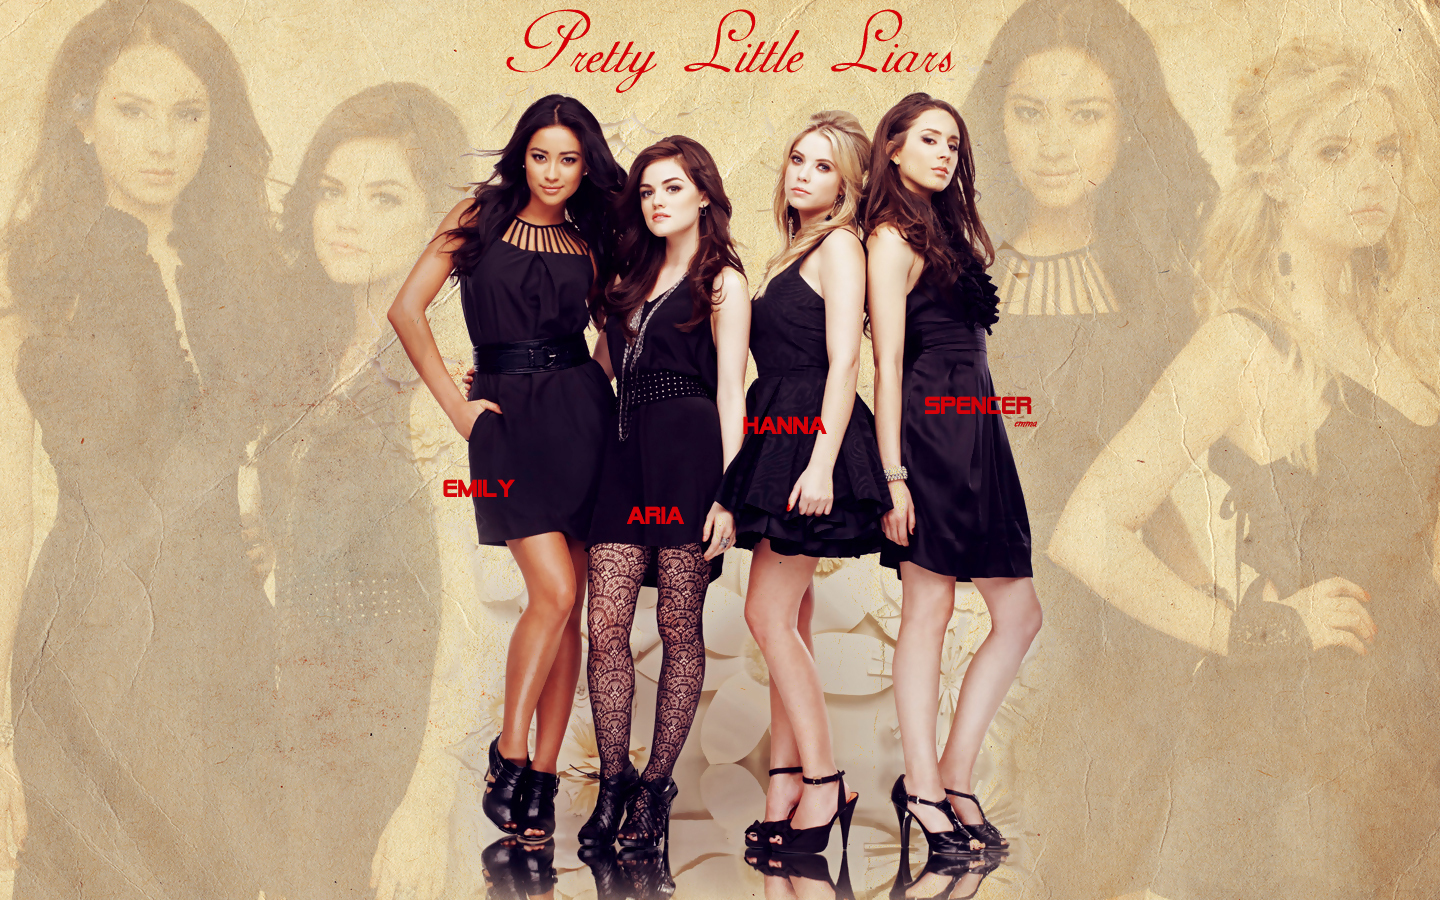 pretty-little-liars-pretty-little-liars-tv-show-15826047-1440-900